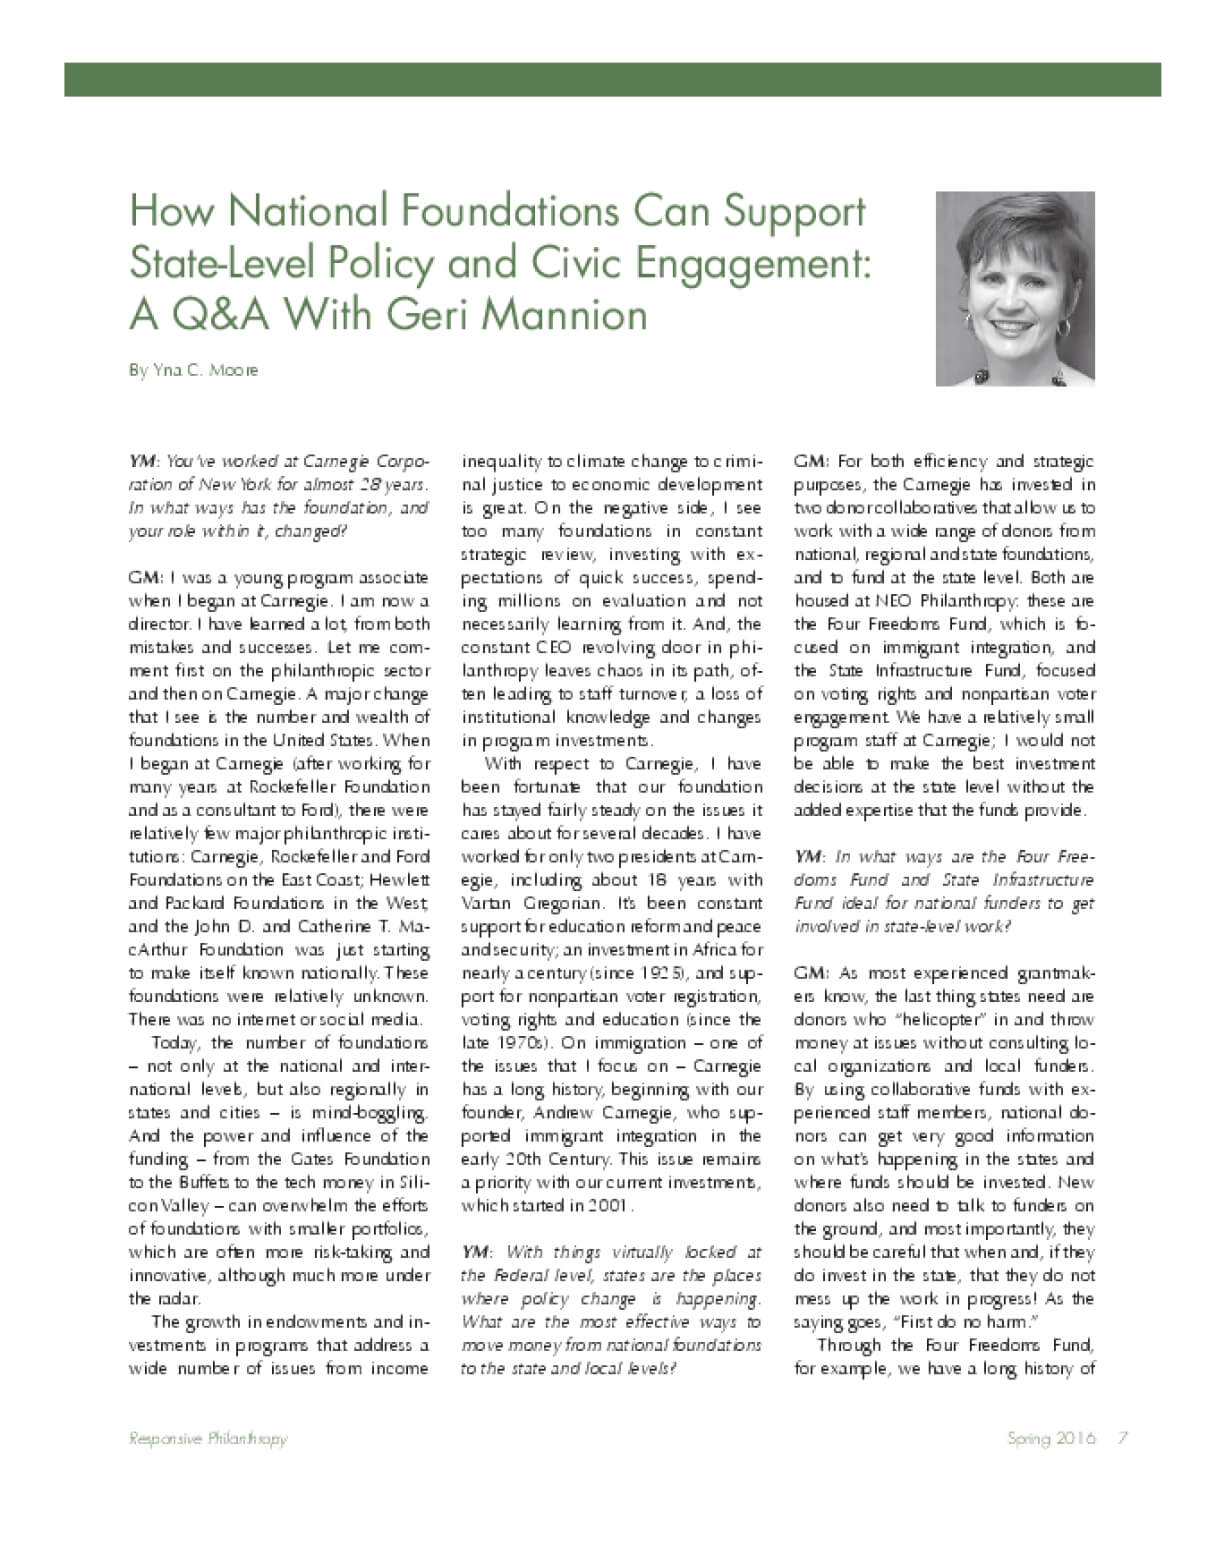 How National Foundations Can Support State-Level Policy and Civic Engagement: A Q&A With Geri Mannion